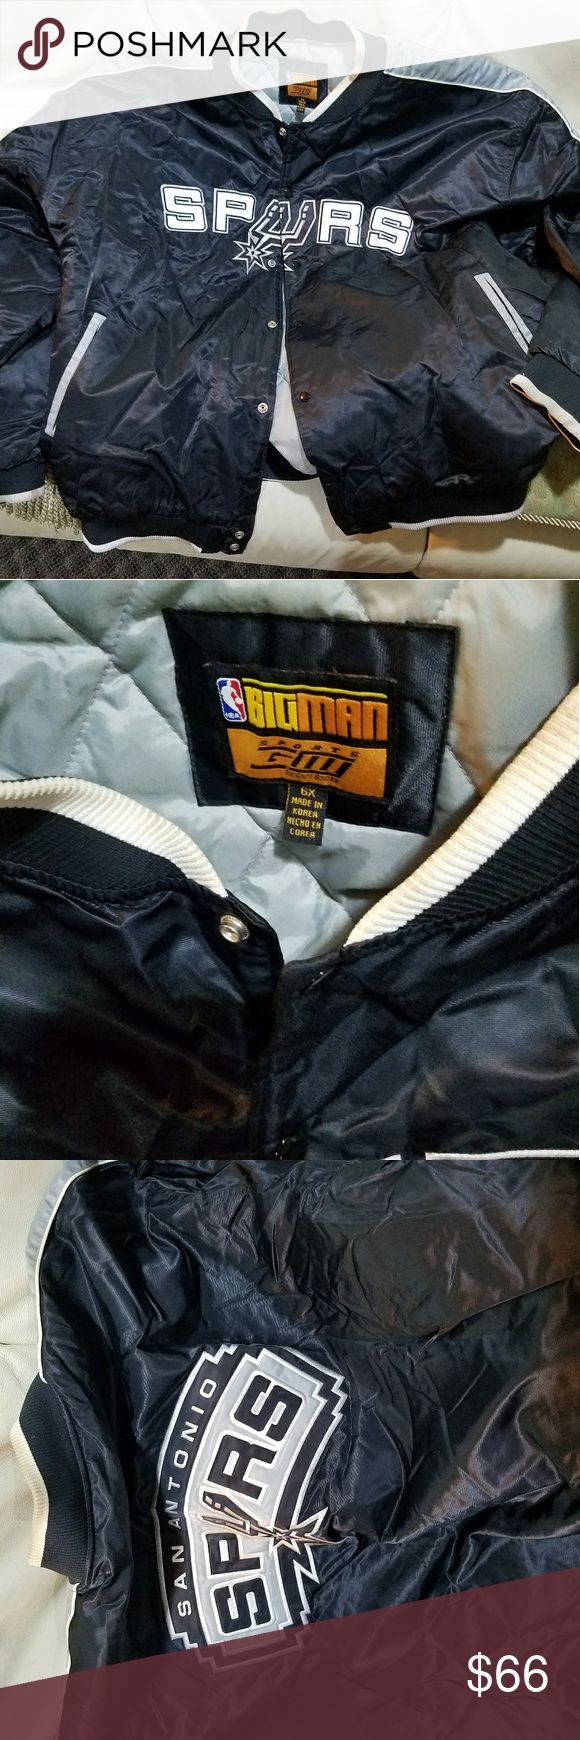 San Antonio Spurs Jacket 6X Good condition see pictures. Jackets & Coats Bomber & Varsity